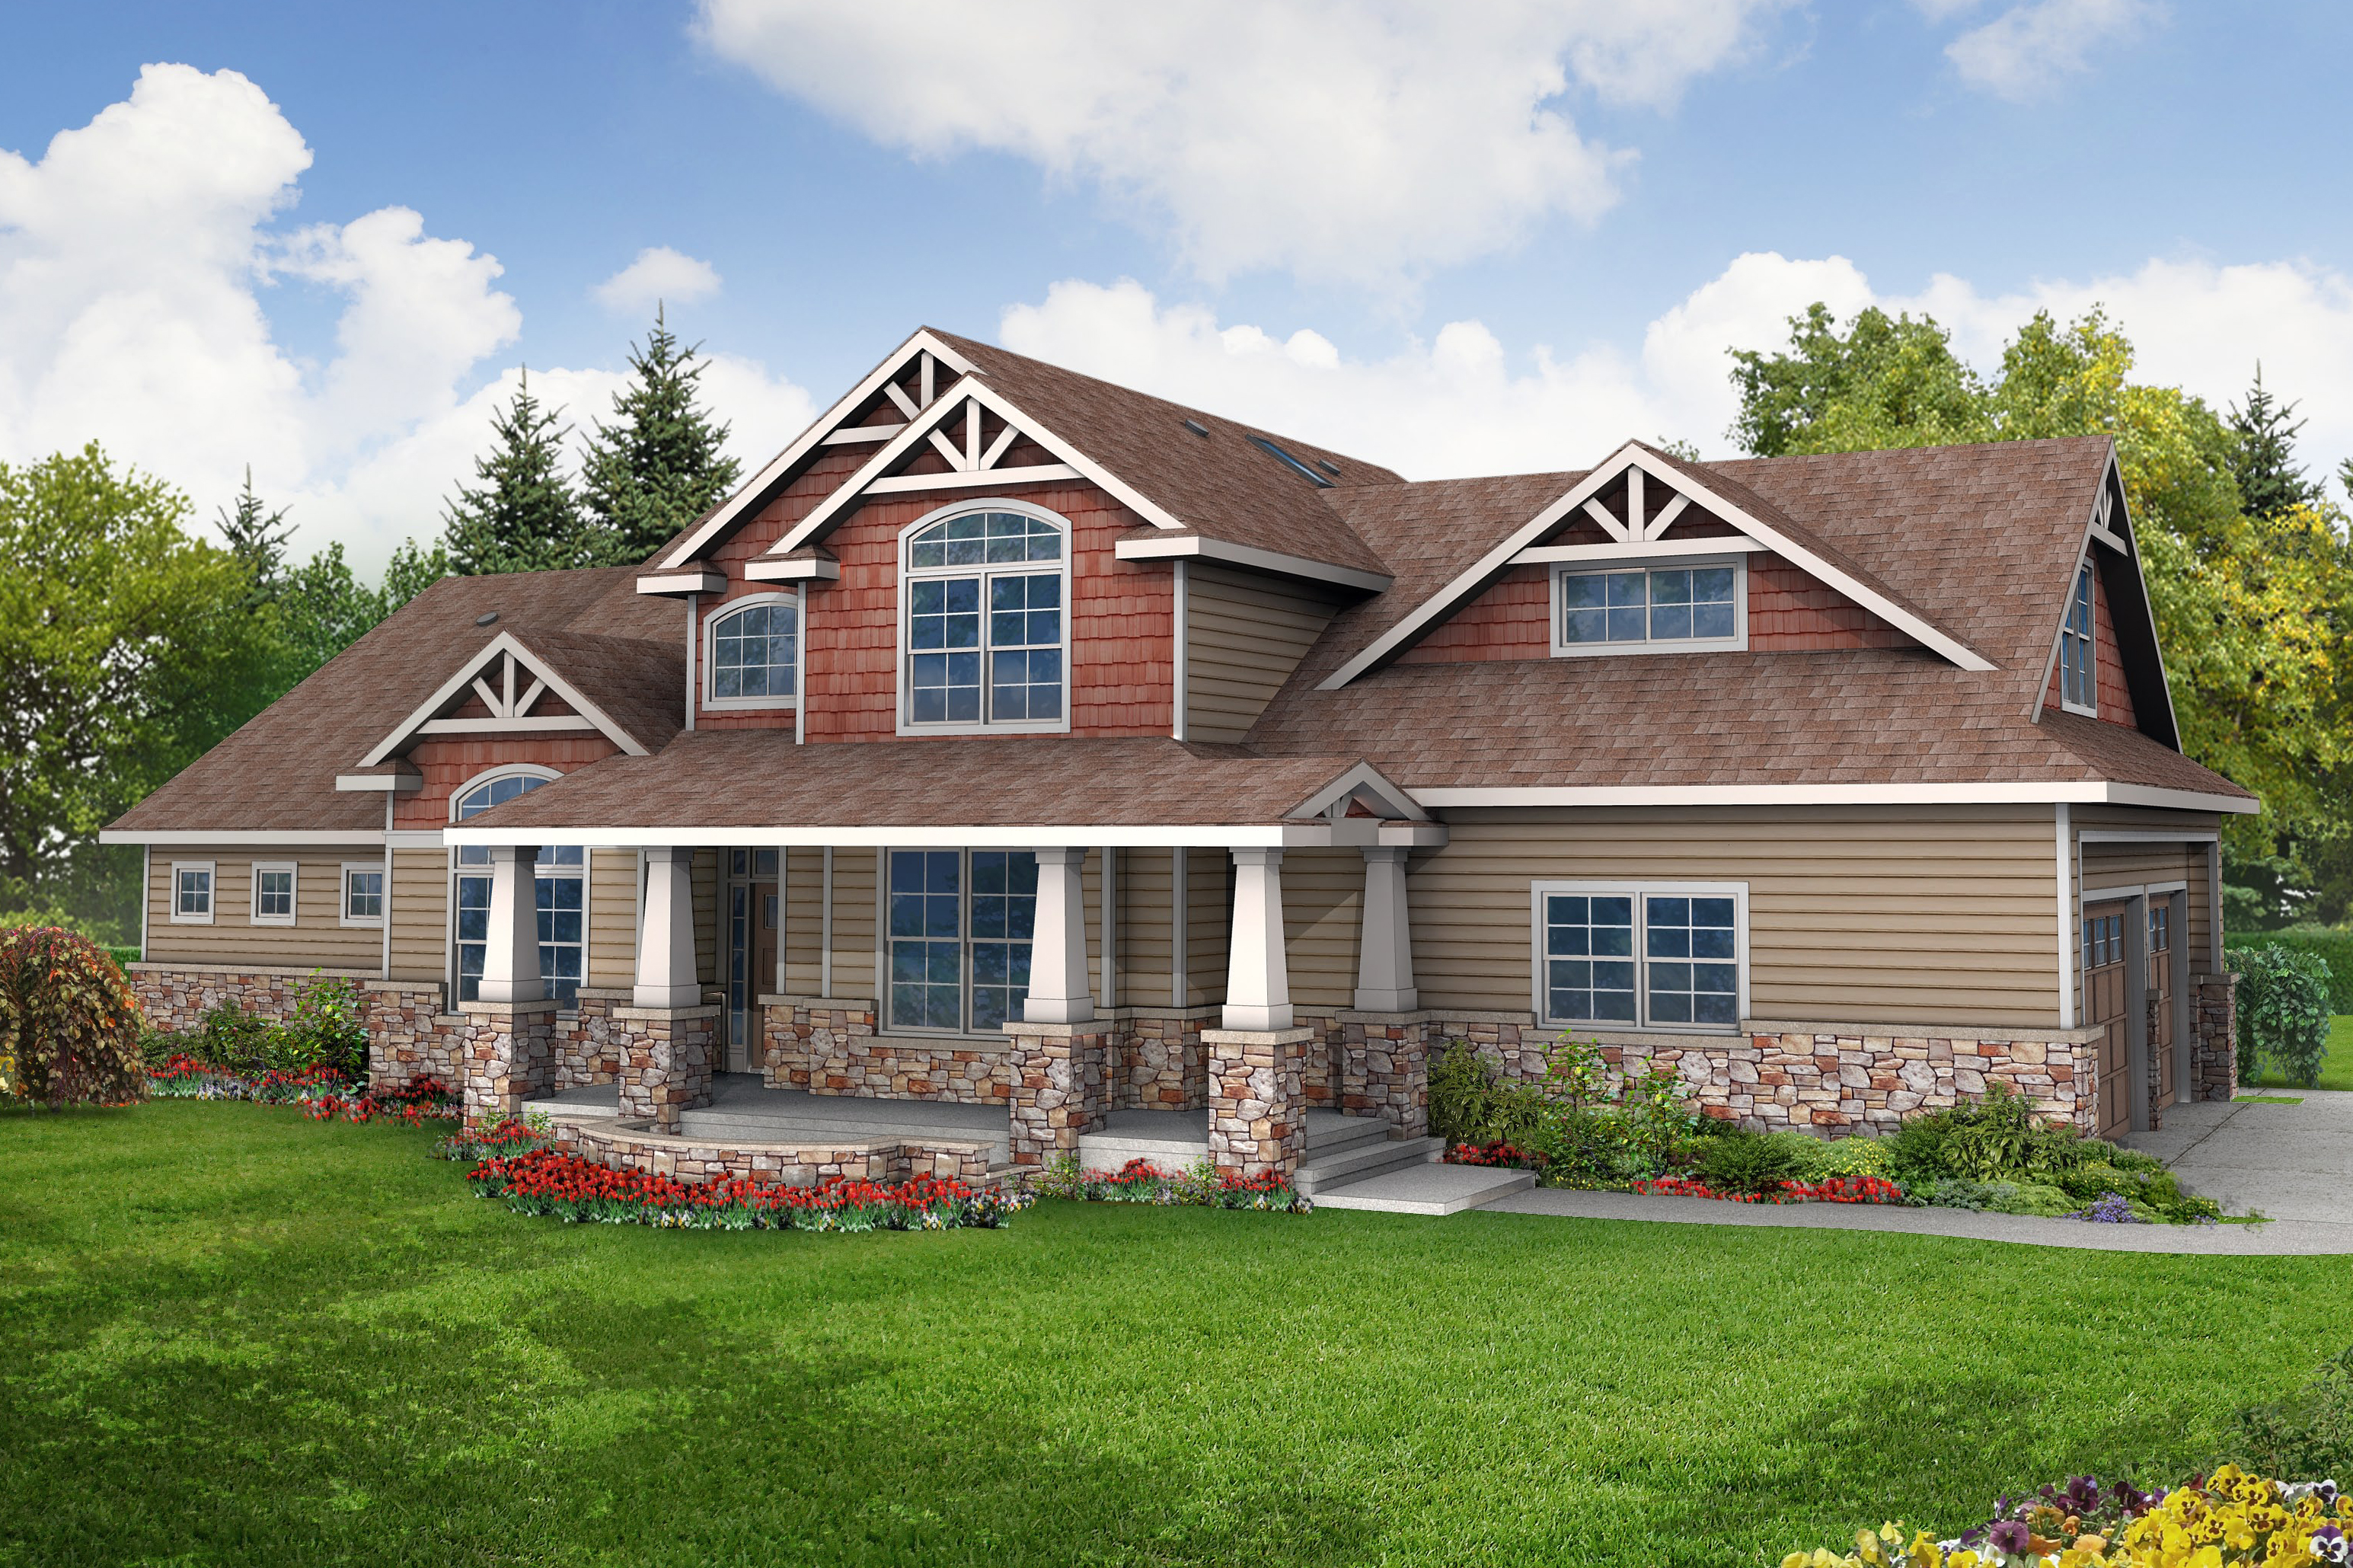 Craftsman house plans craftsman home plans craftsman for House plans with photos